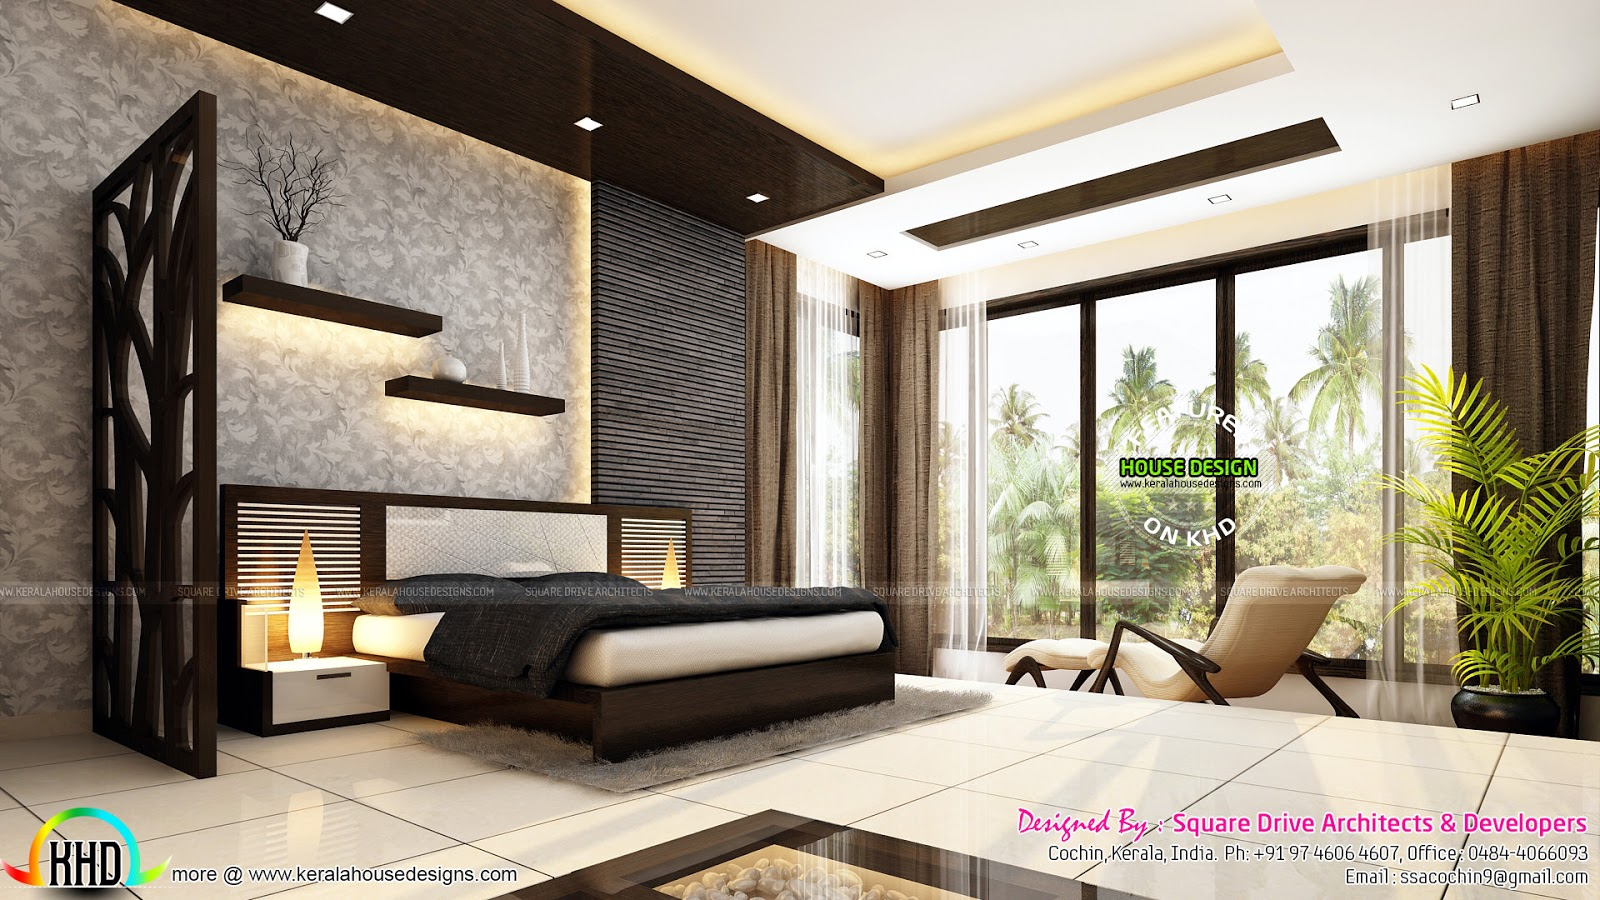 Very beautiful modern interior designs kerala home for Modern interior designs 2016